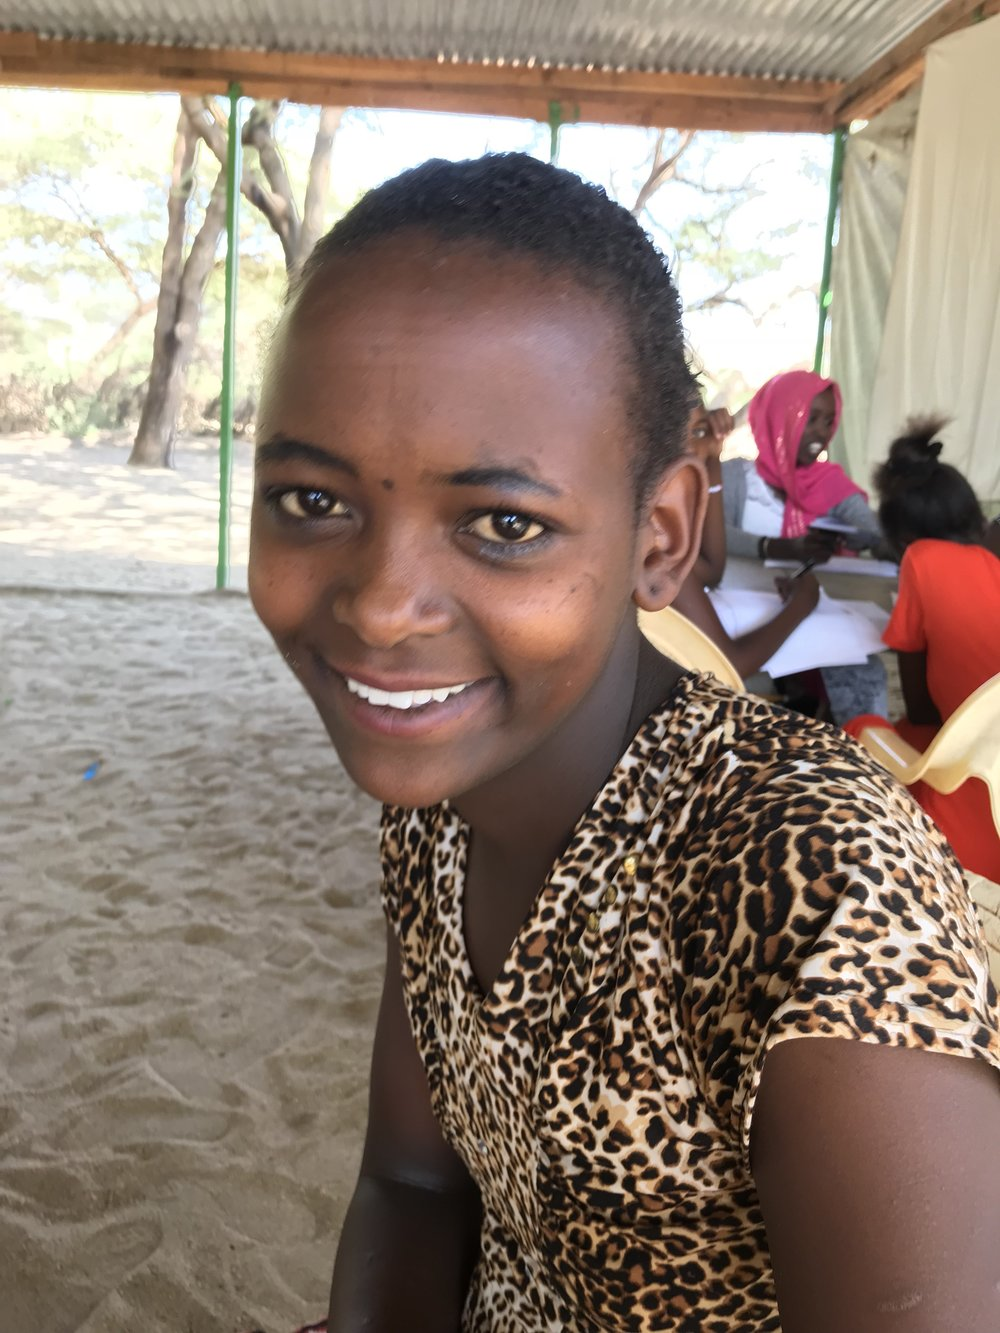 Sarafina - Sarafina is from Samburu, Kenya. She lives with her mother and is the third born of her siblings. Sarafina has three sisters and four brothers.